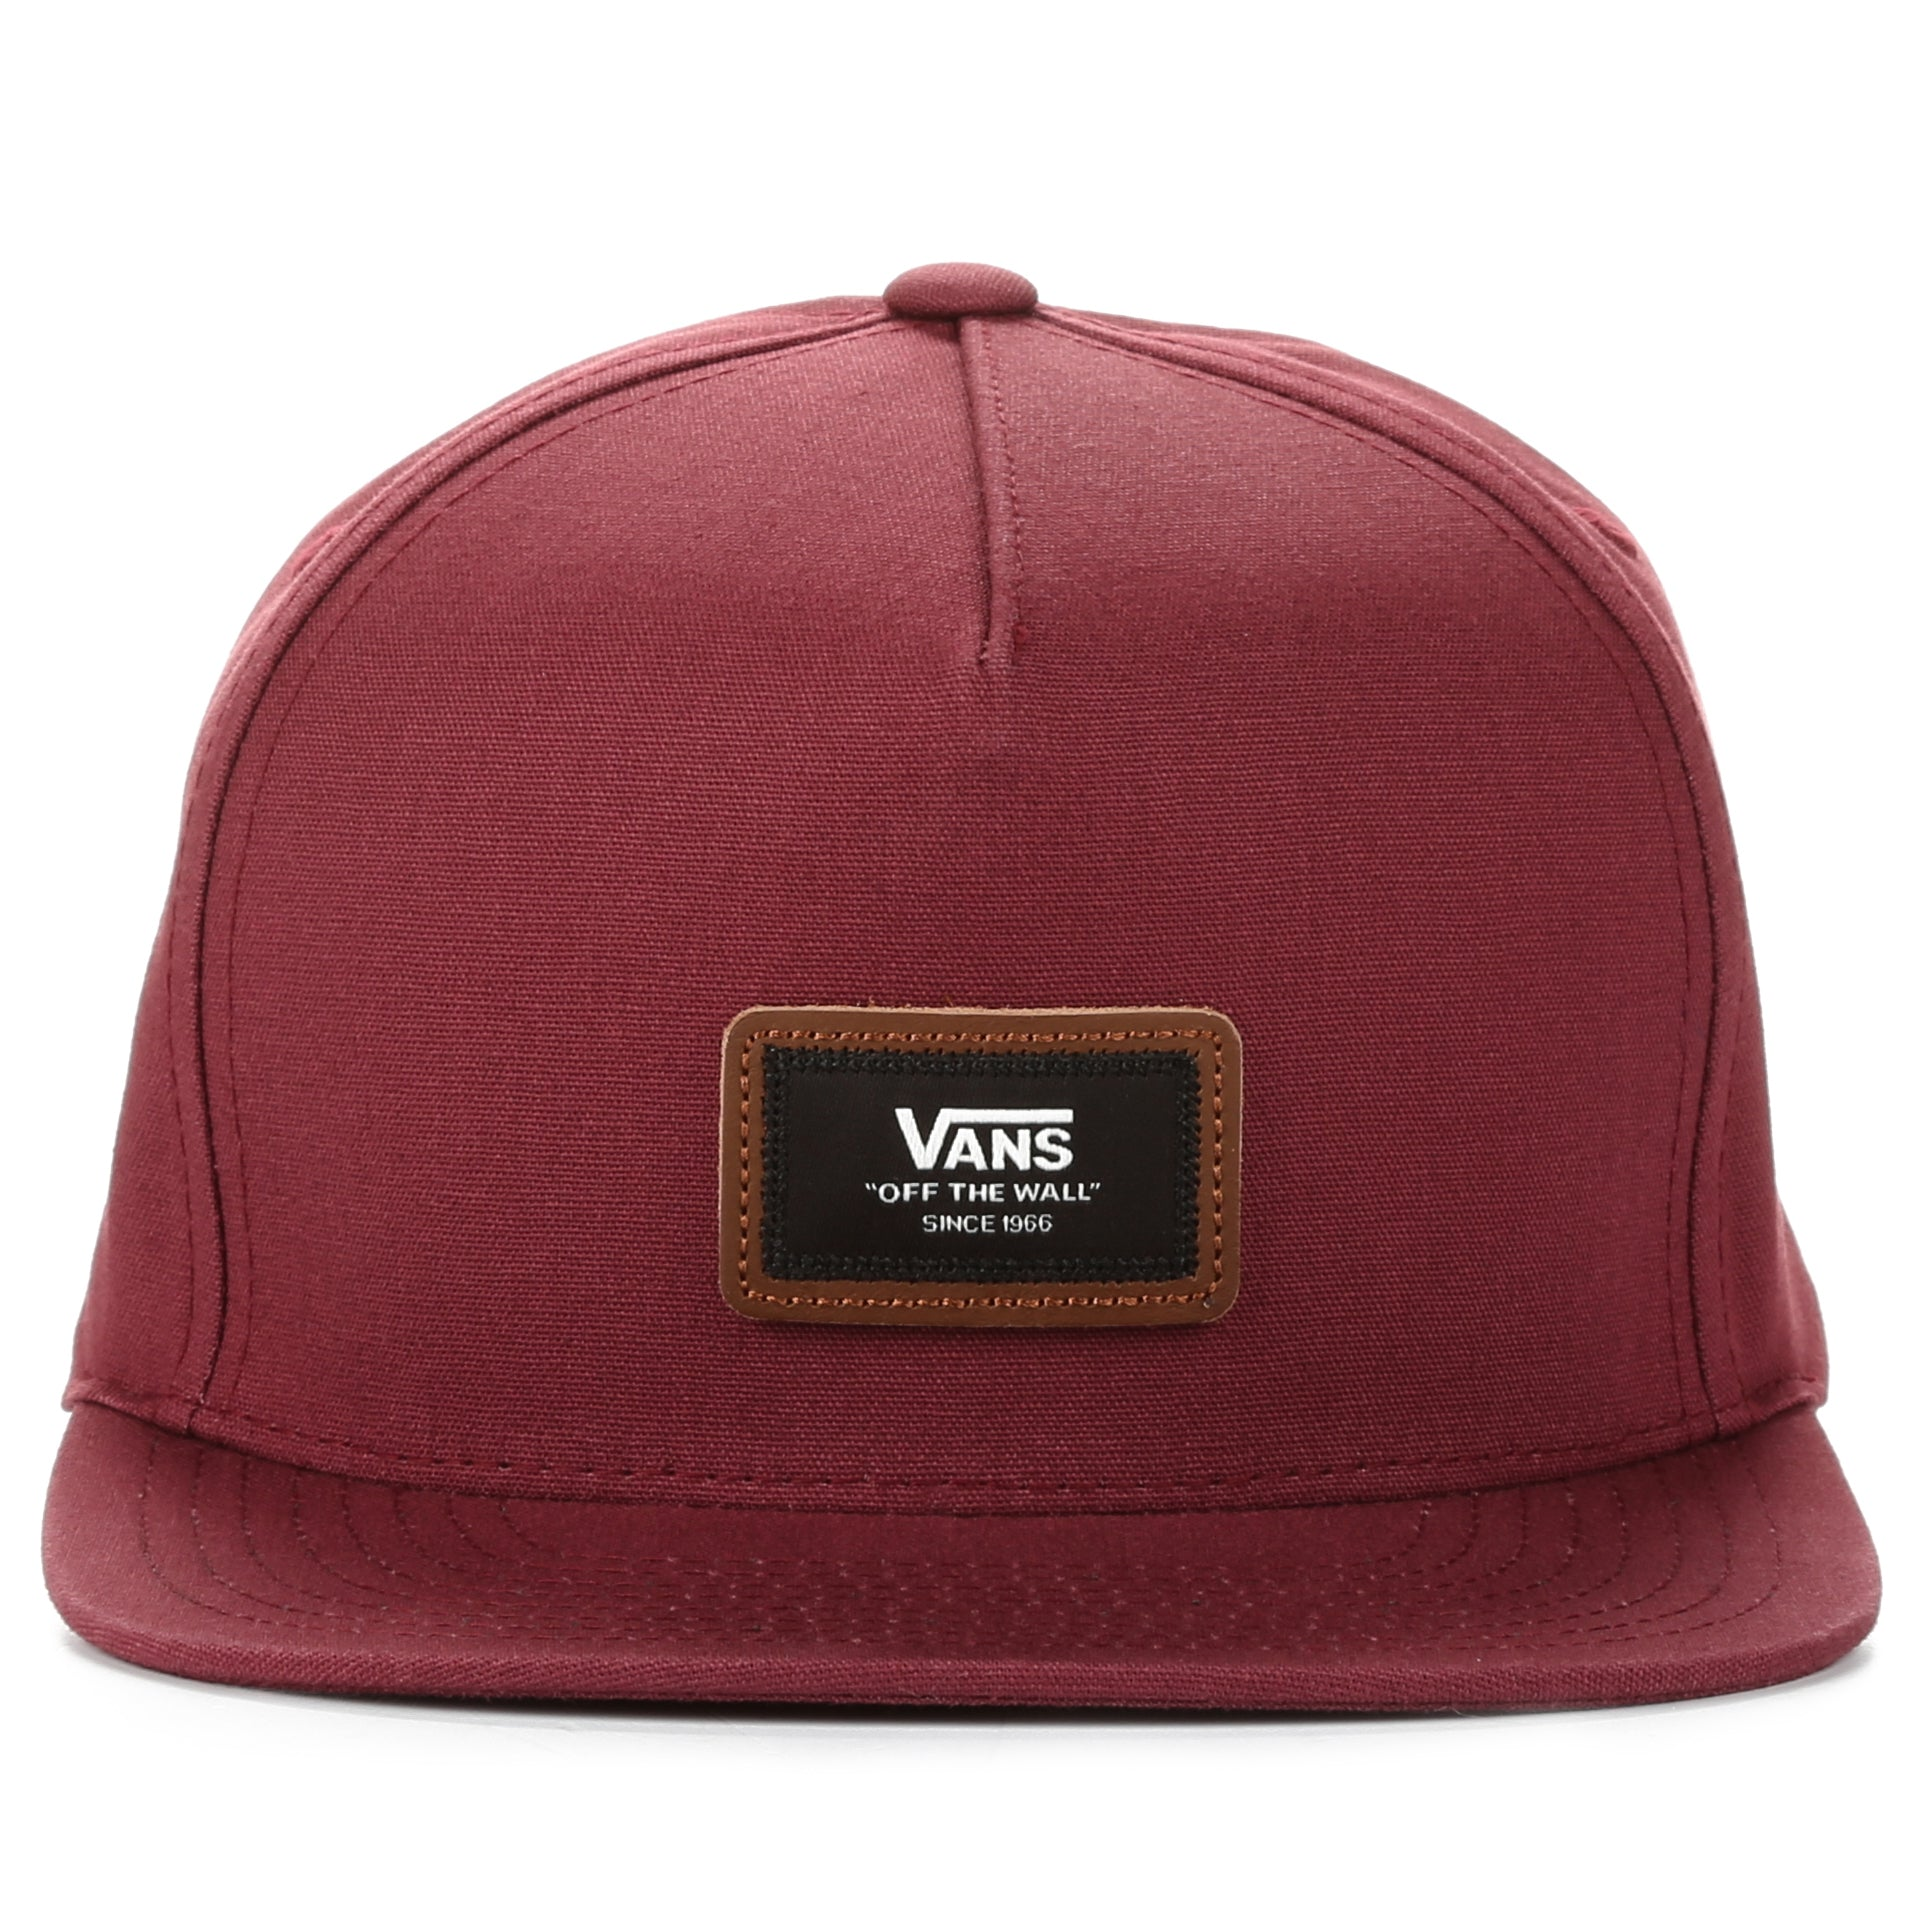 Vans Fiske Snapback Hat - Port Royale - New Star 947f1a8c9b0